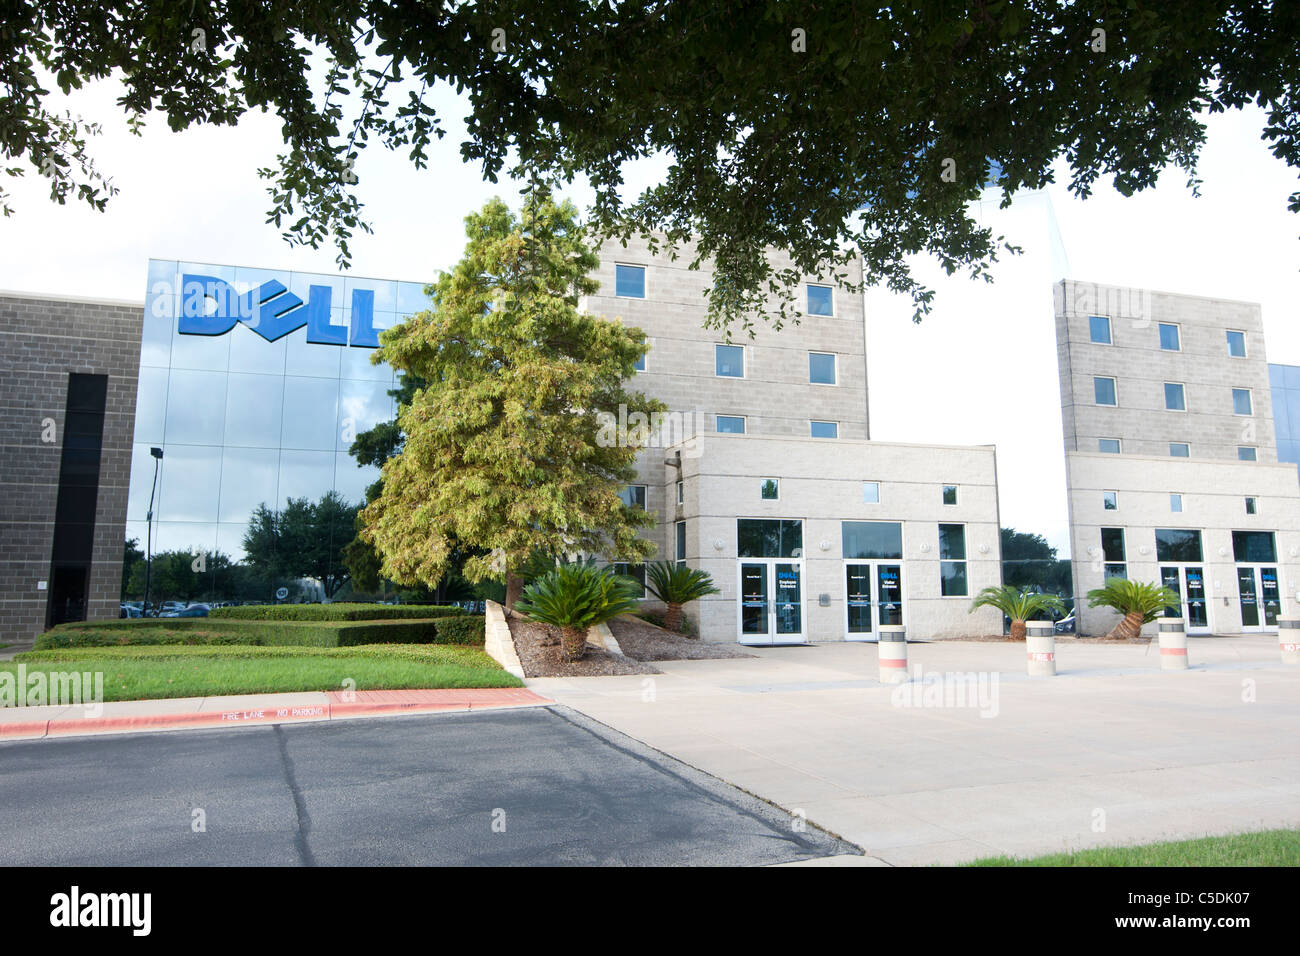 Dell Computers corporate headquarters building in Round Rock, Texas - Stock Image